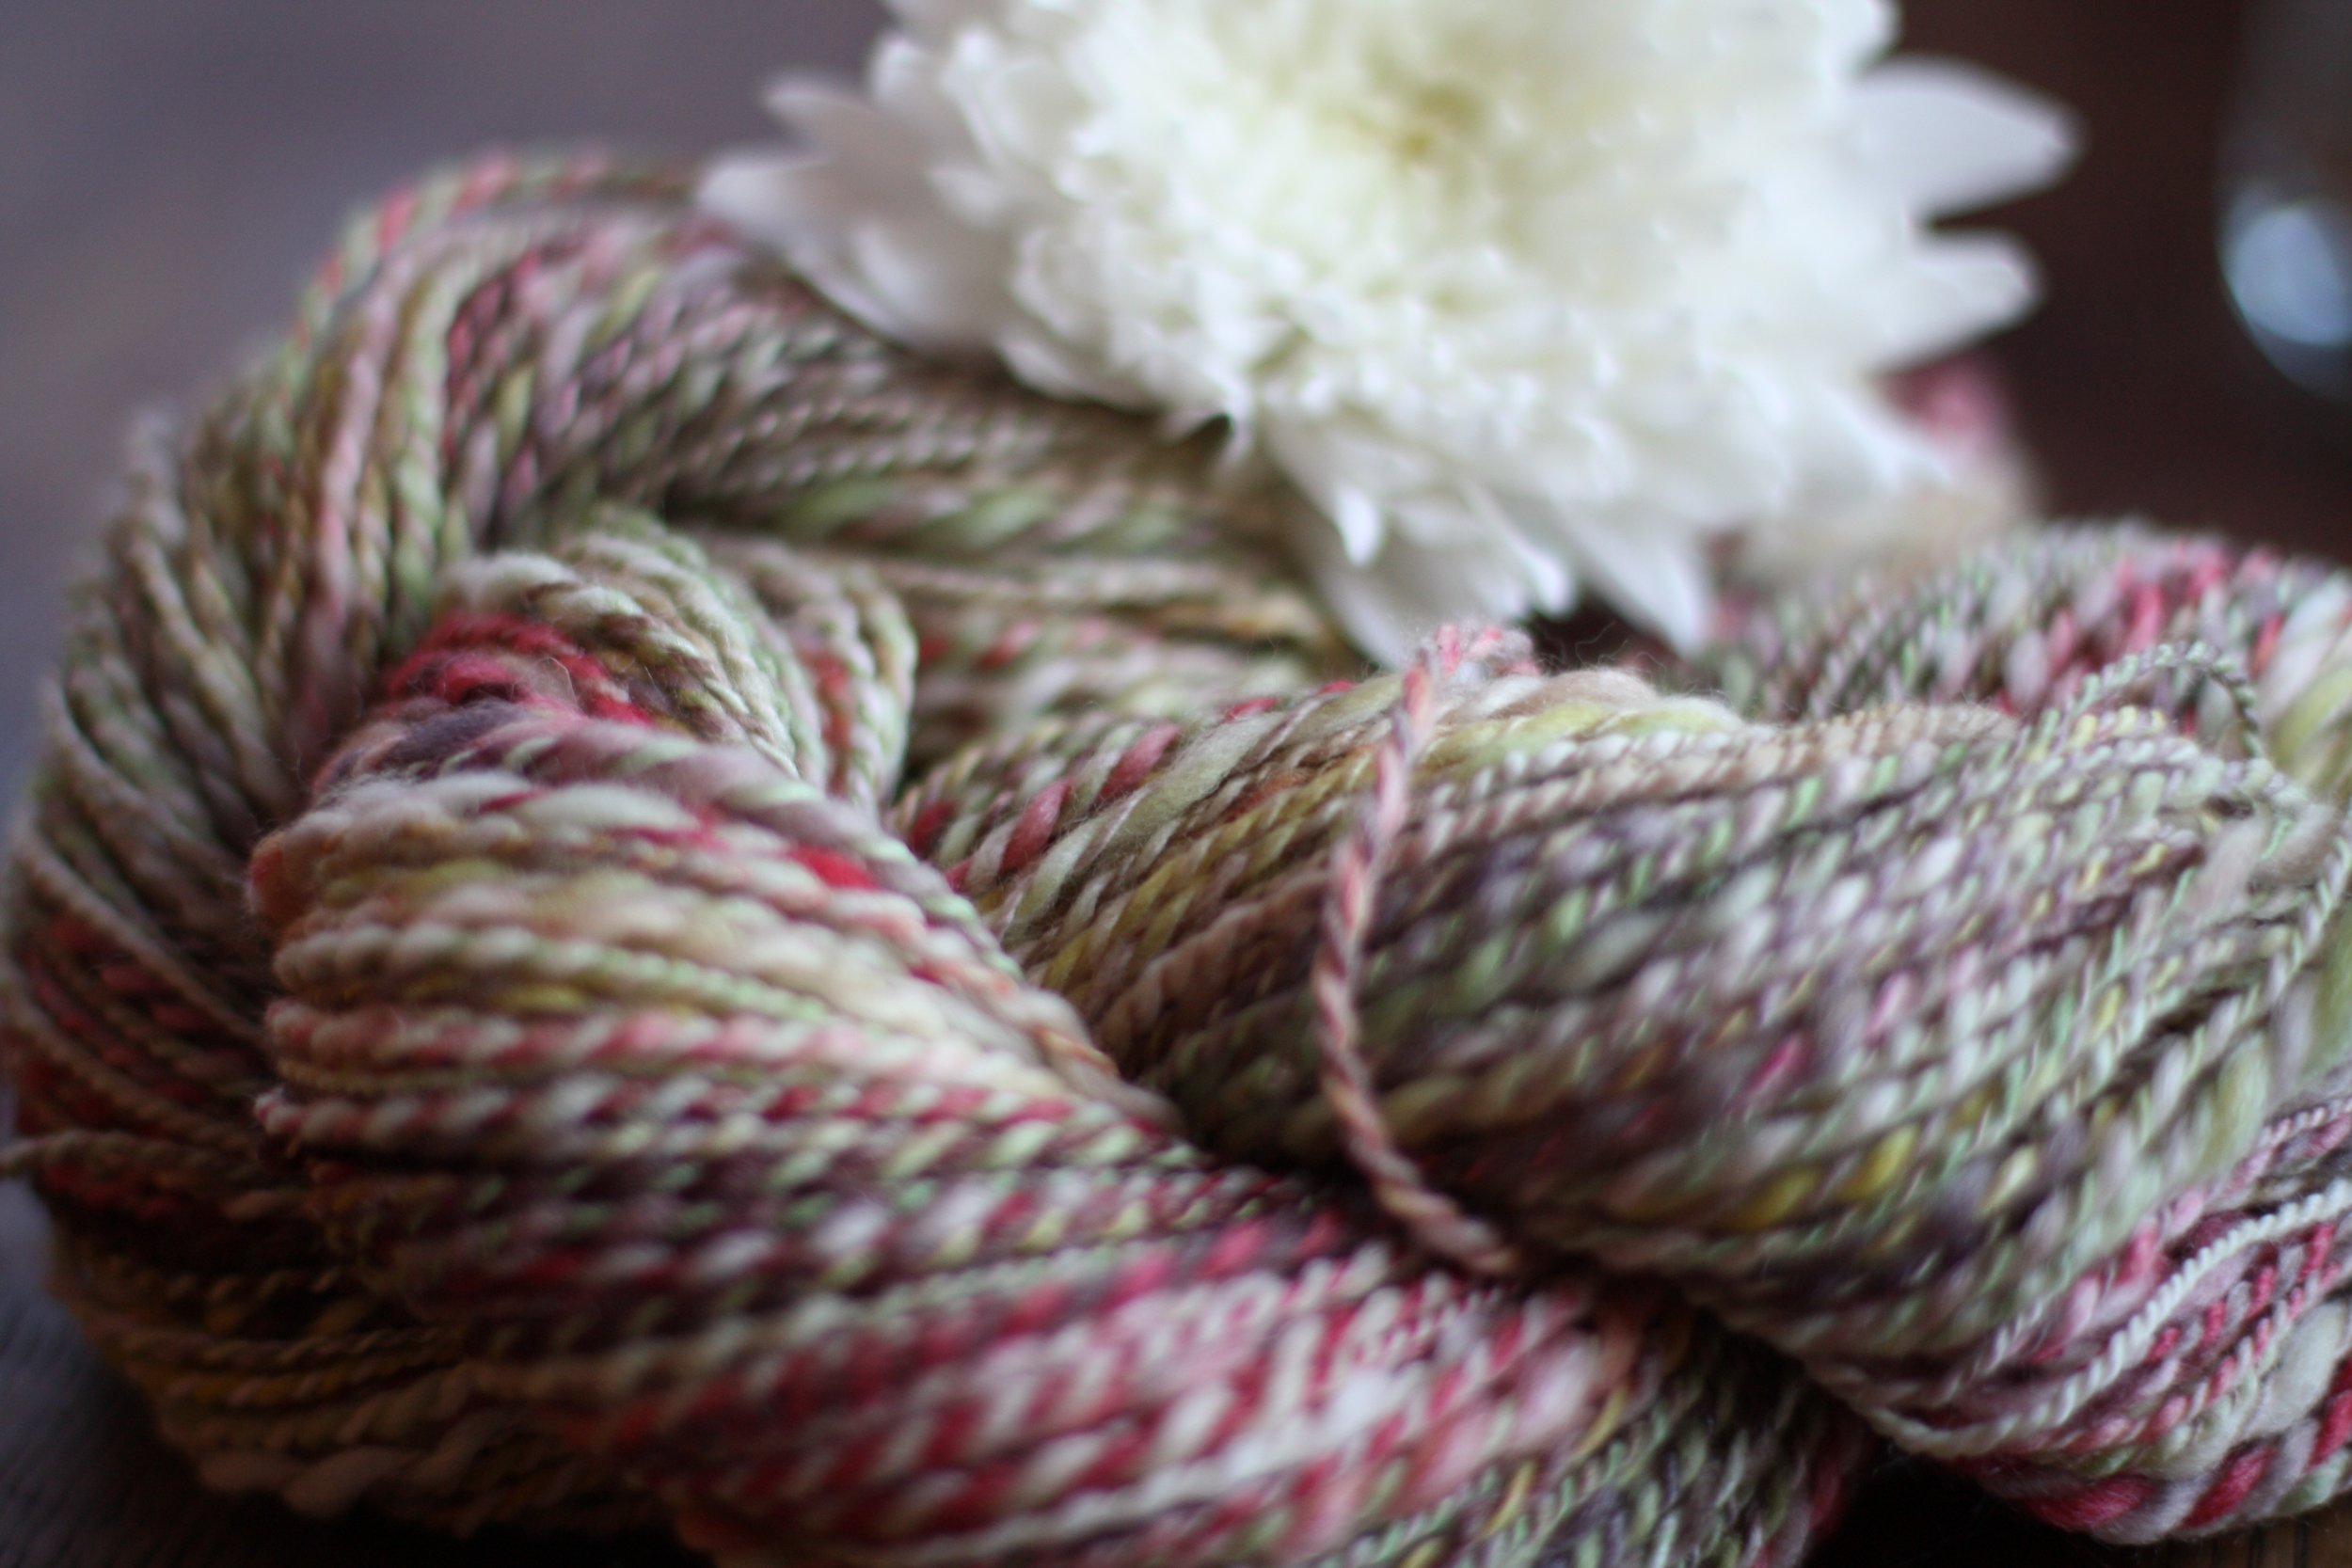 A skein of handspun wool/silk yarn in shades of cream, red, brown, and green rests on a weathered wooden table with a white flower | 14 Mile Farm Handweaving and Homesteading in Alaska